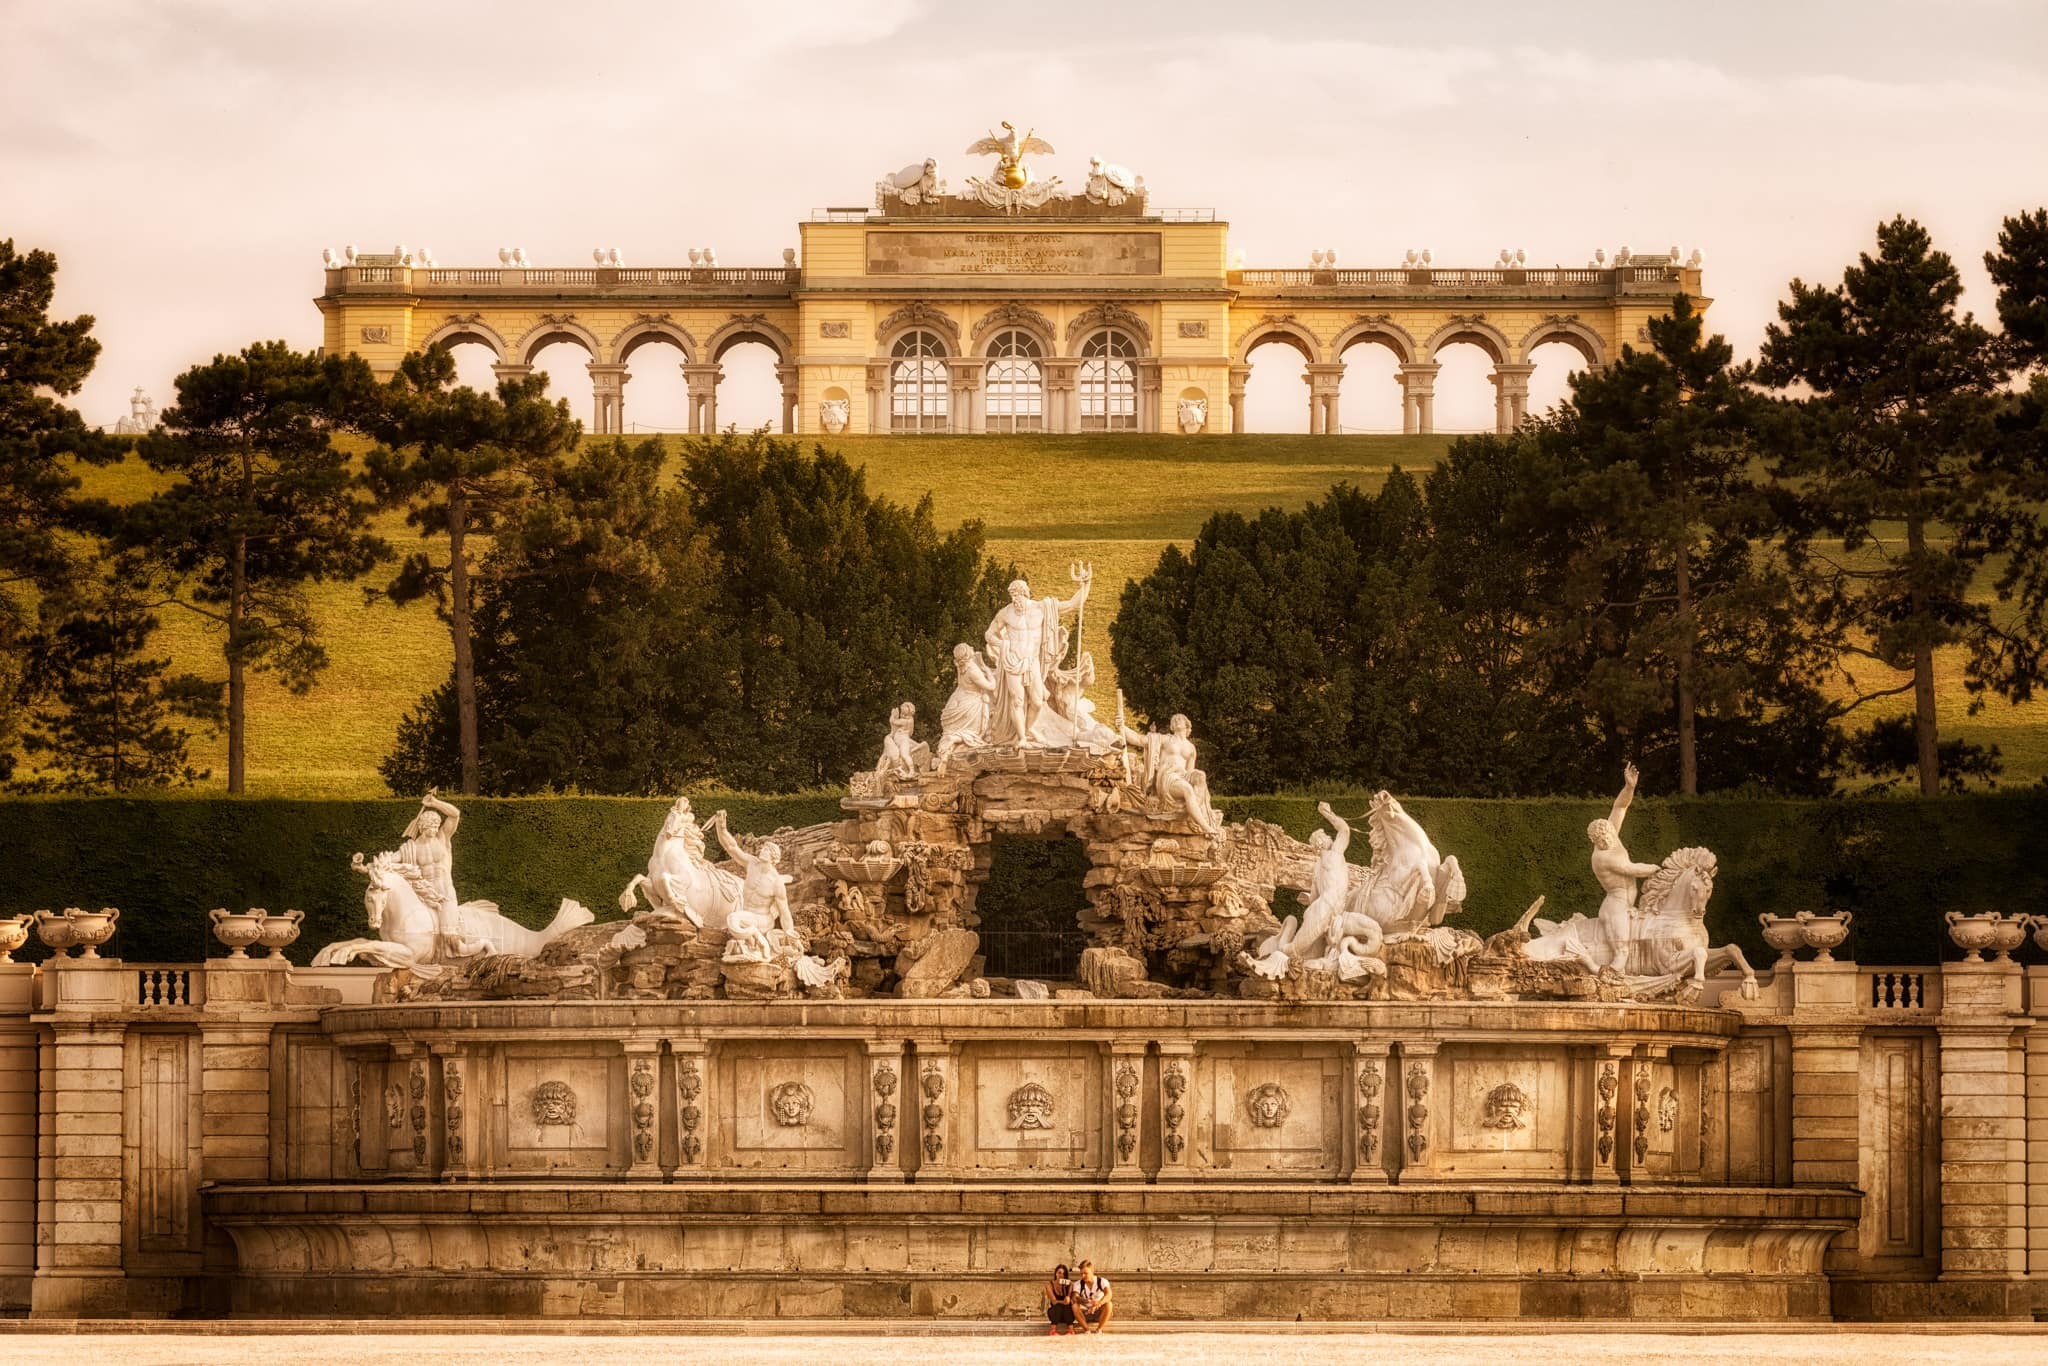 The Gloriette and The Neptune Fountain in Vienna on a Summer's day.